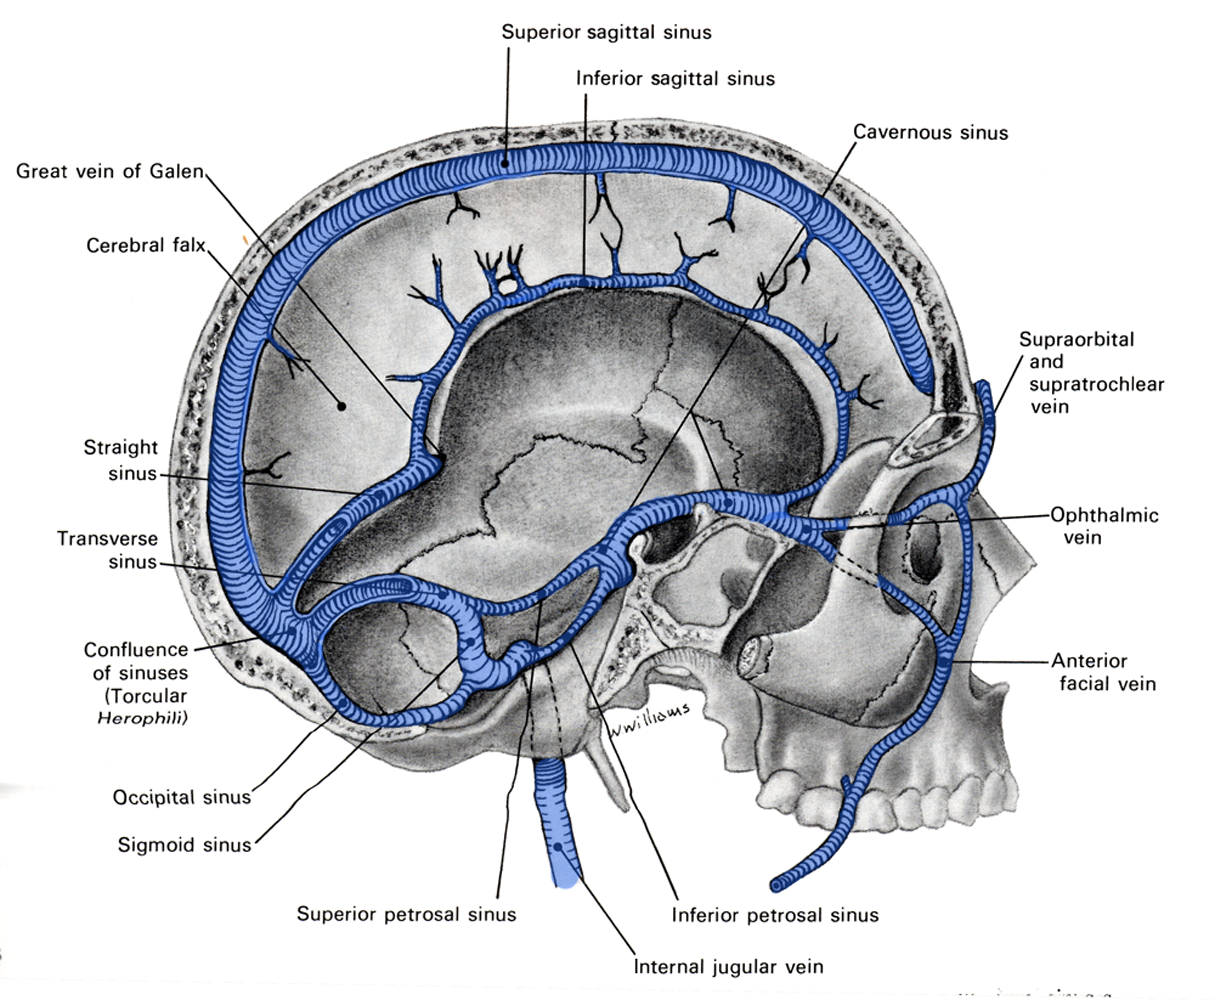 Dural sinus anatomy